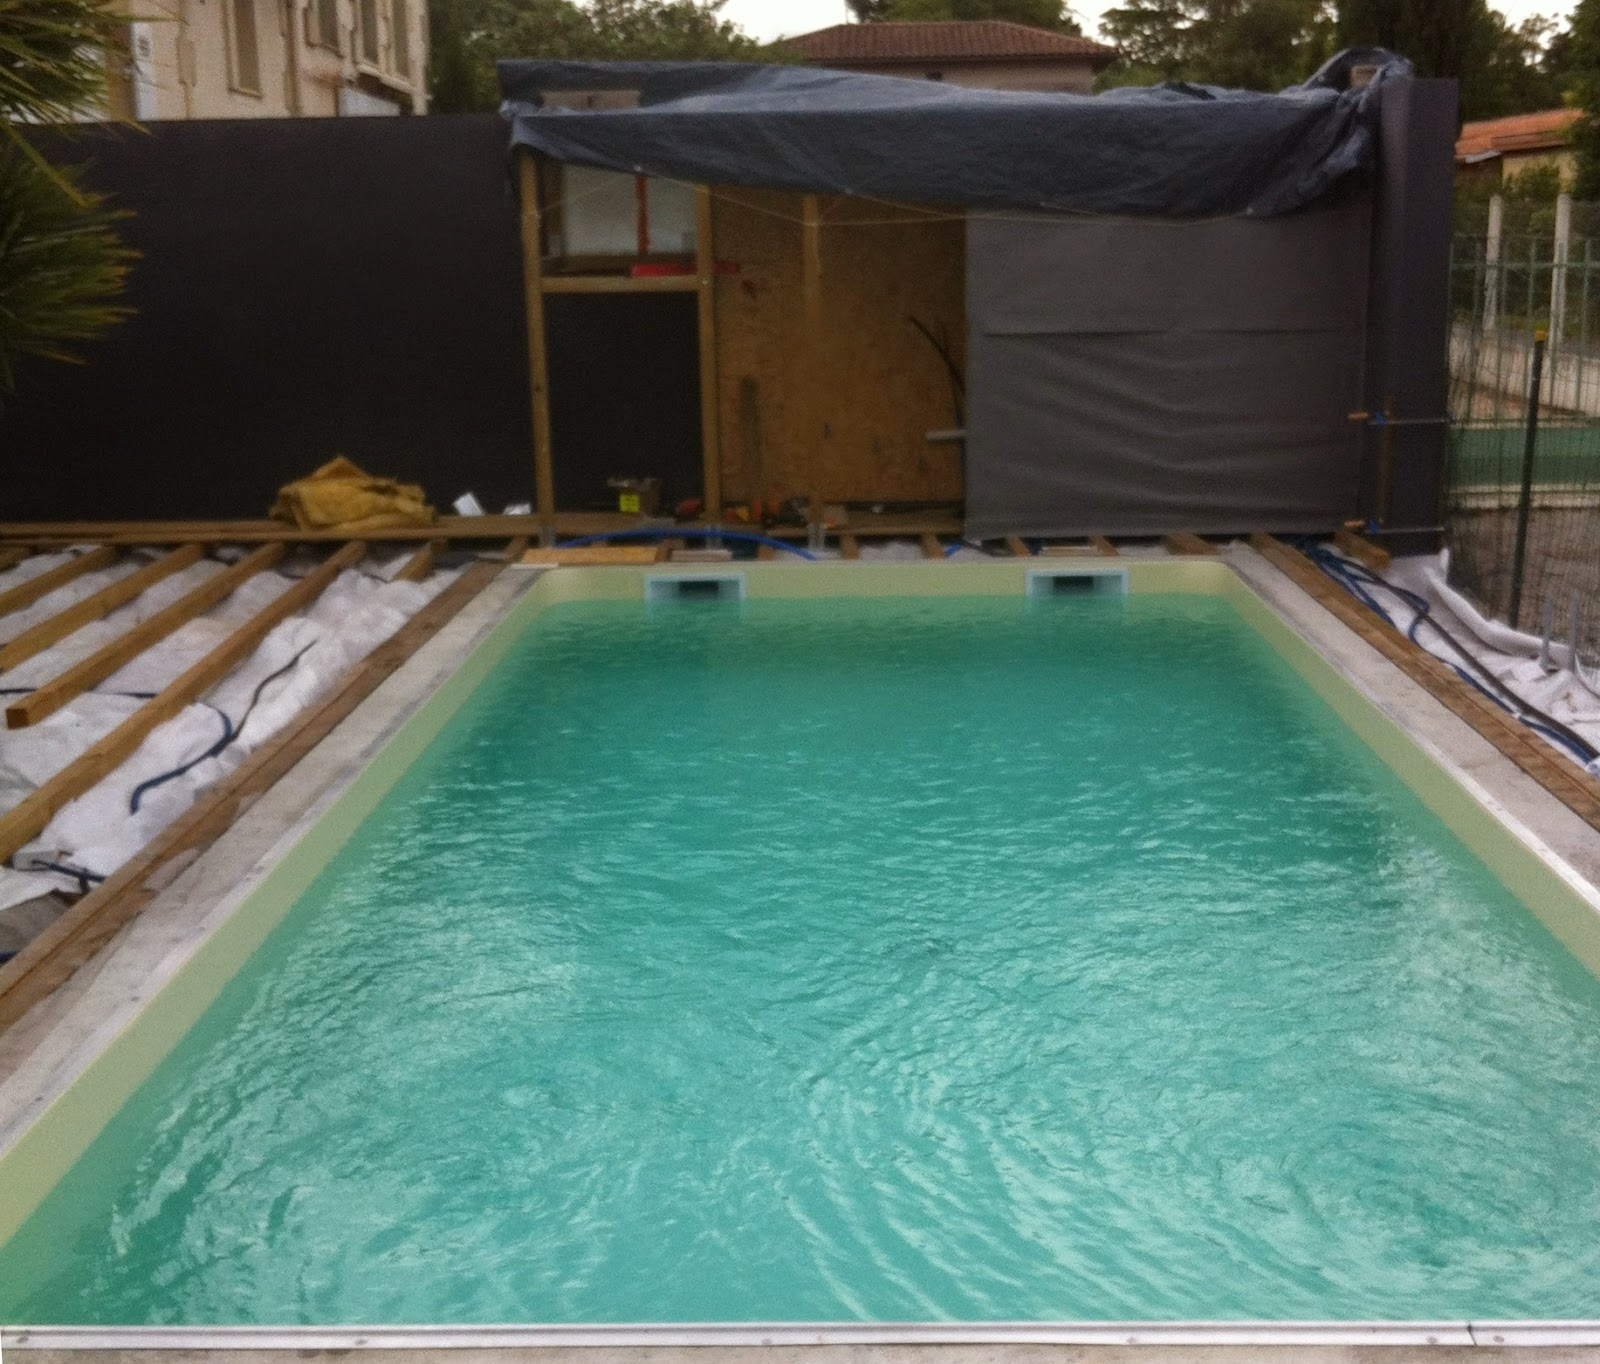 Projet tapes de construction d 39 une piscine en for Fabricant de liner piscine